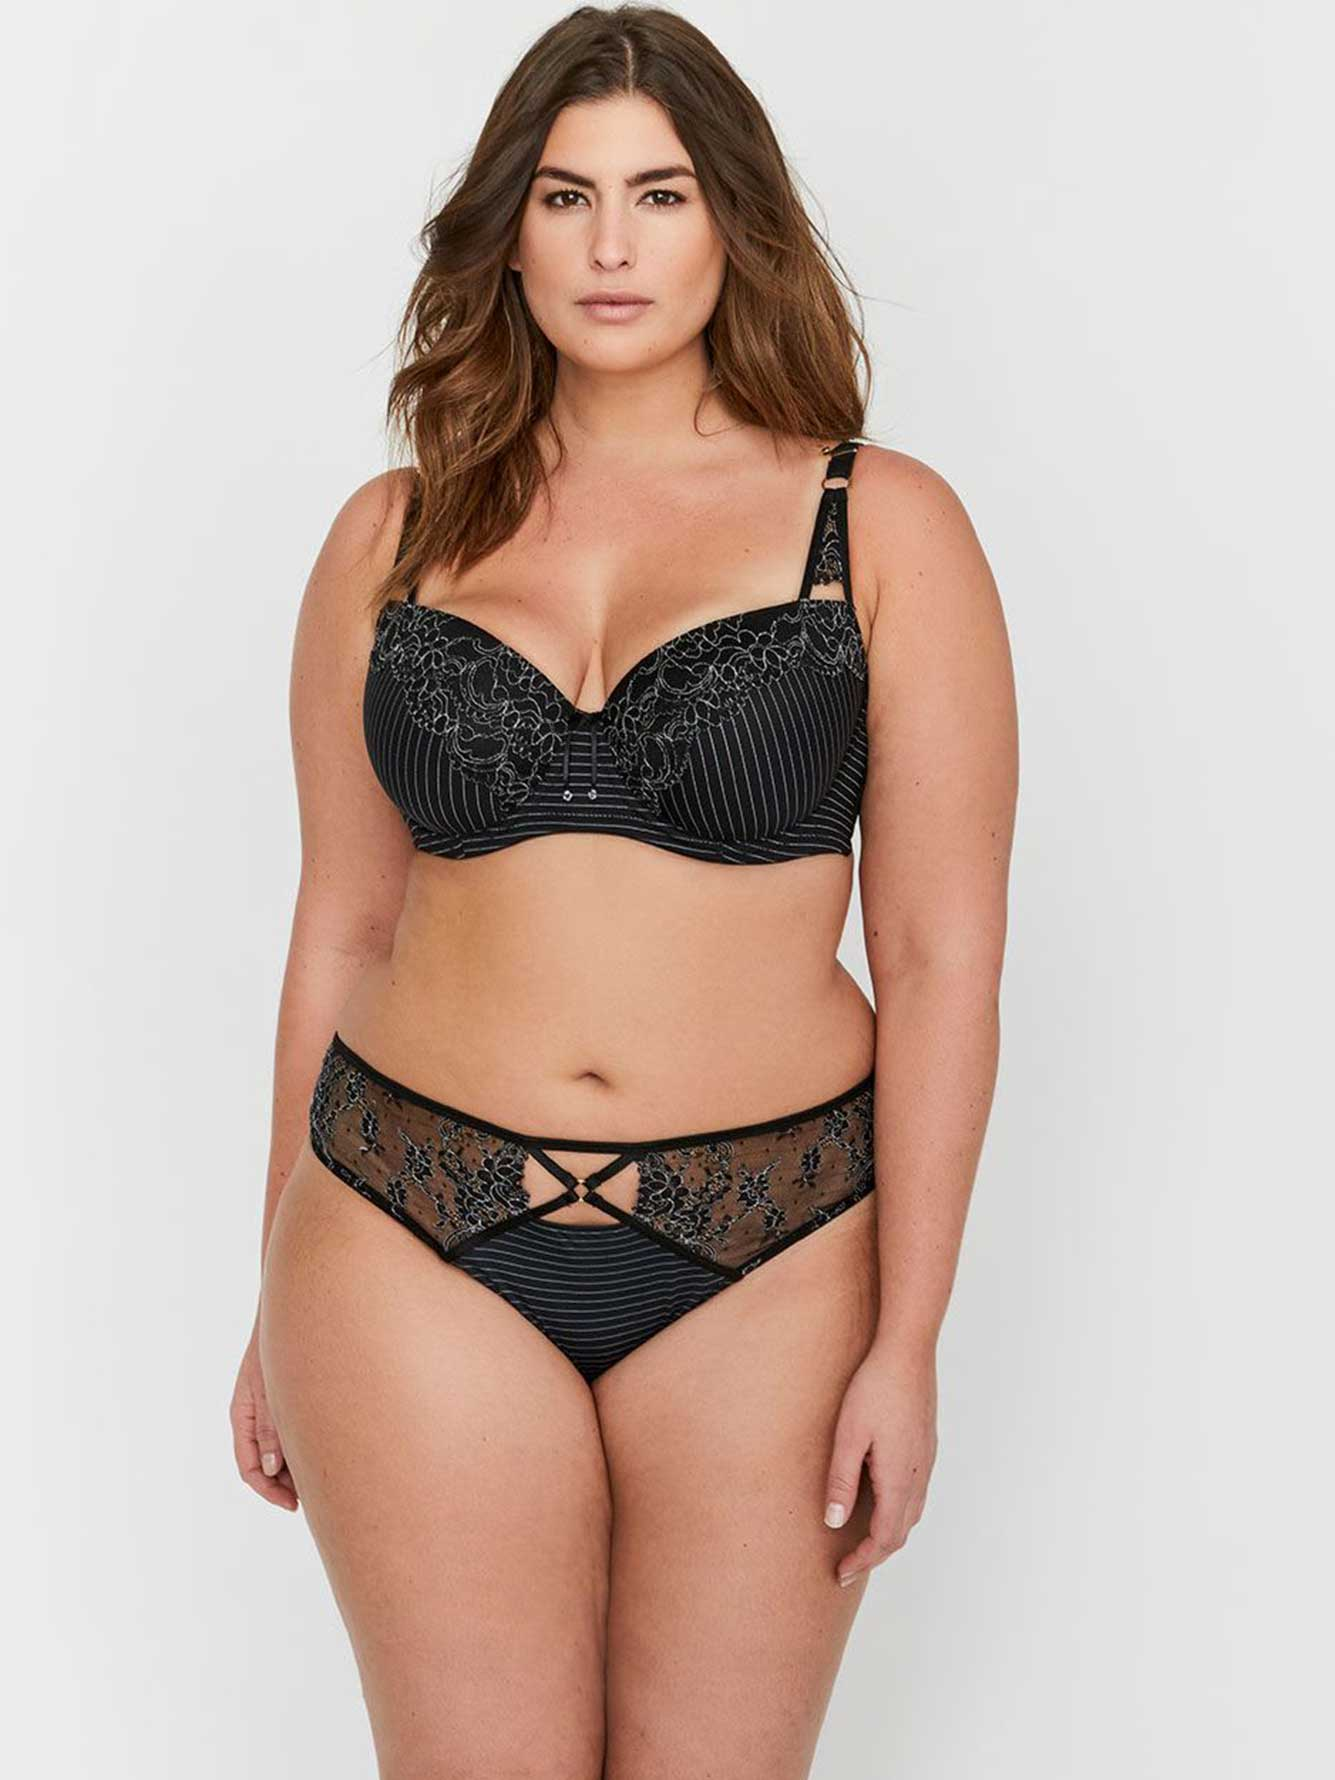 aaa3029c3 Ashley Graham Essentials Lace and Striped Showstopper Bra | Addition ...